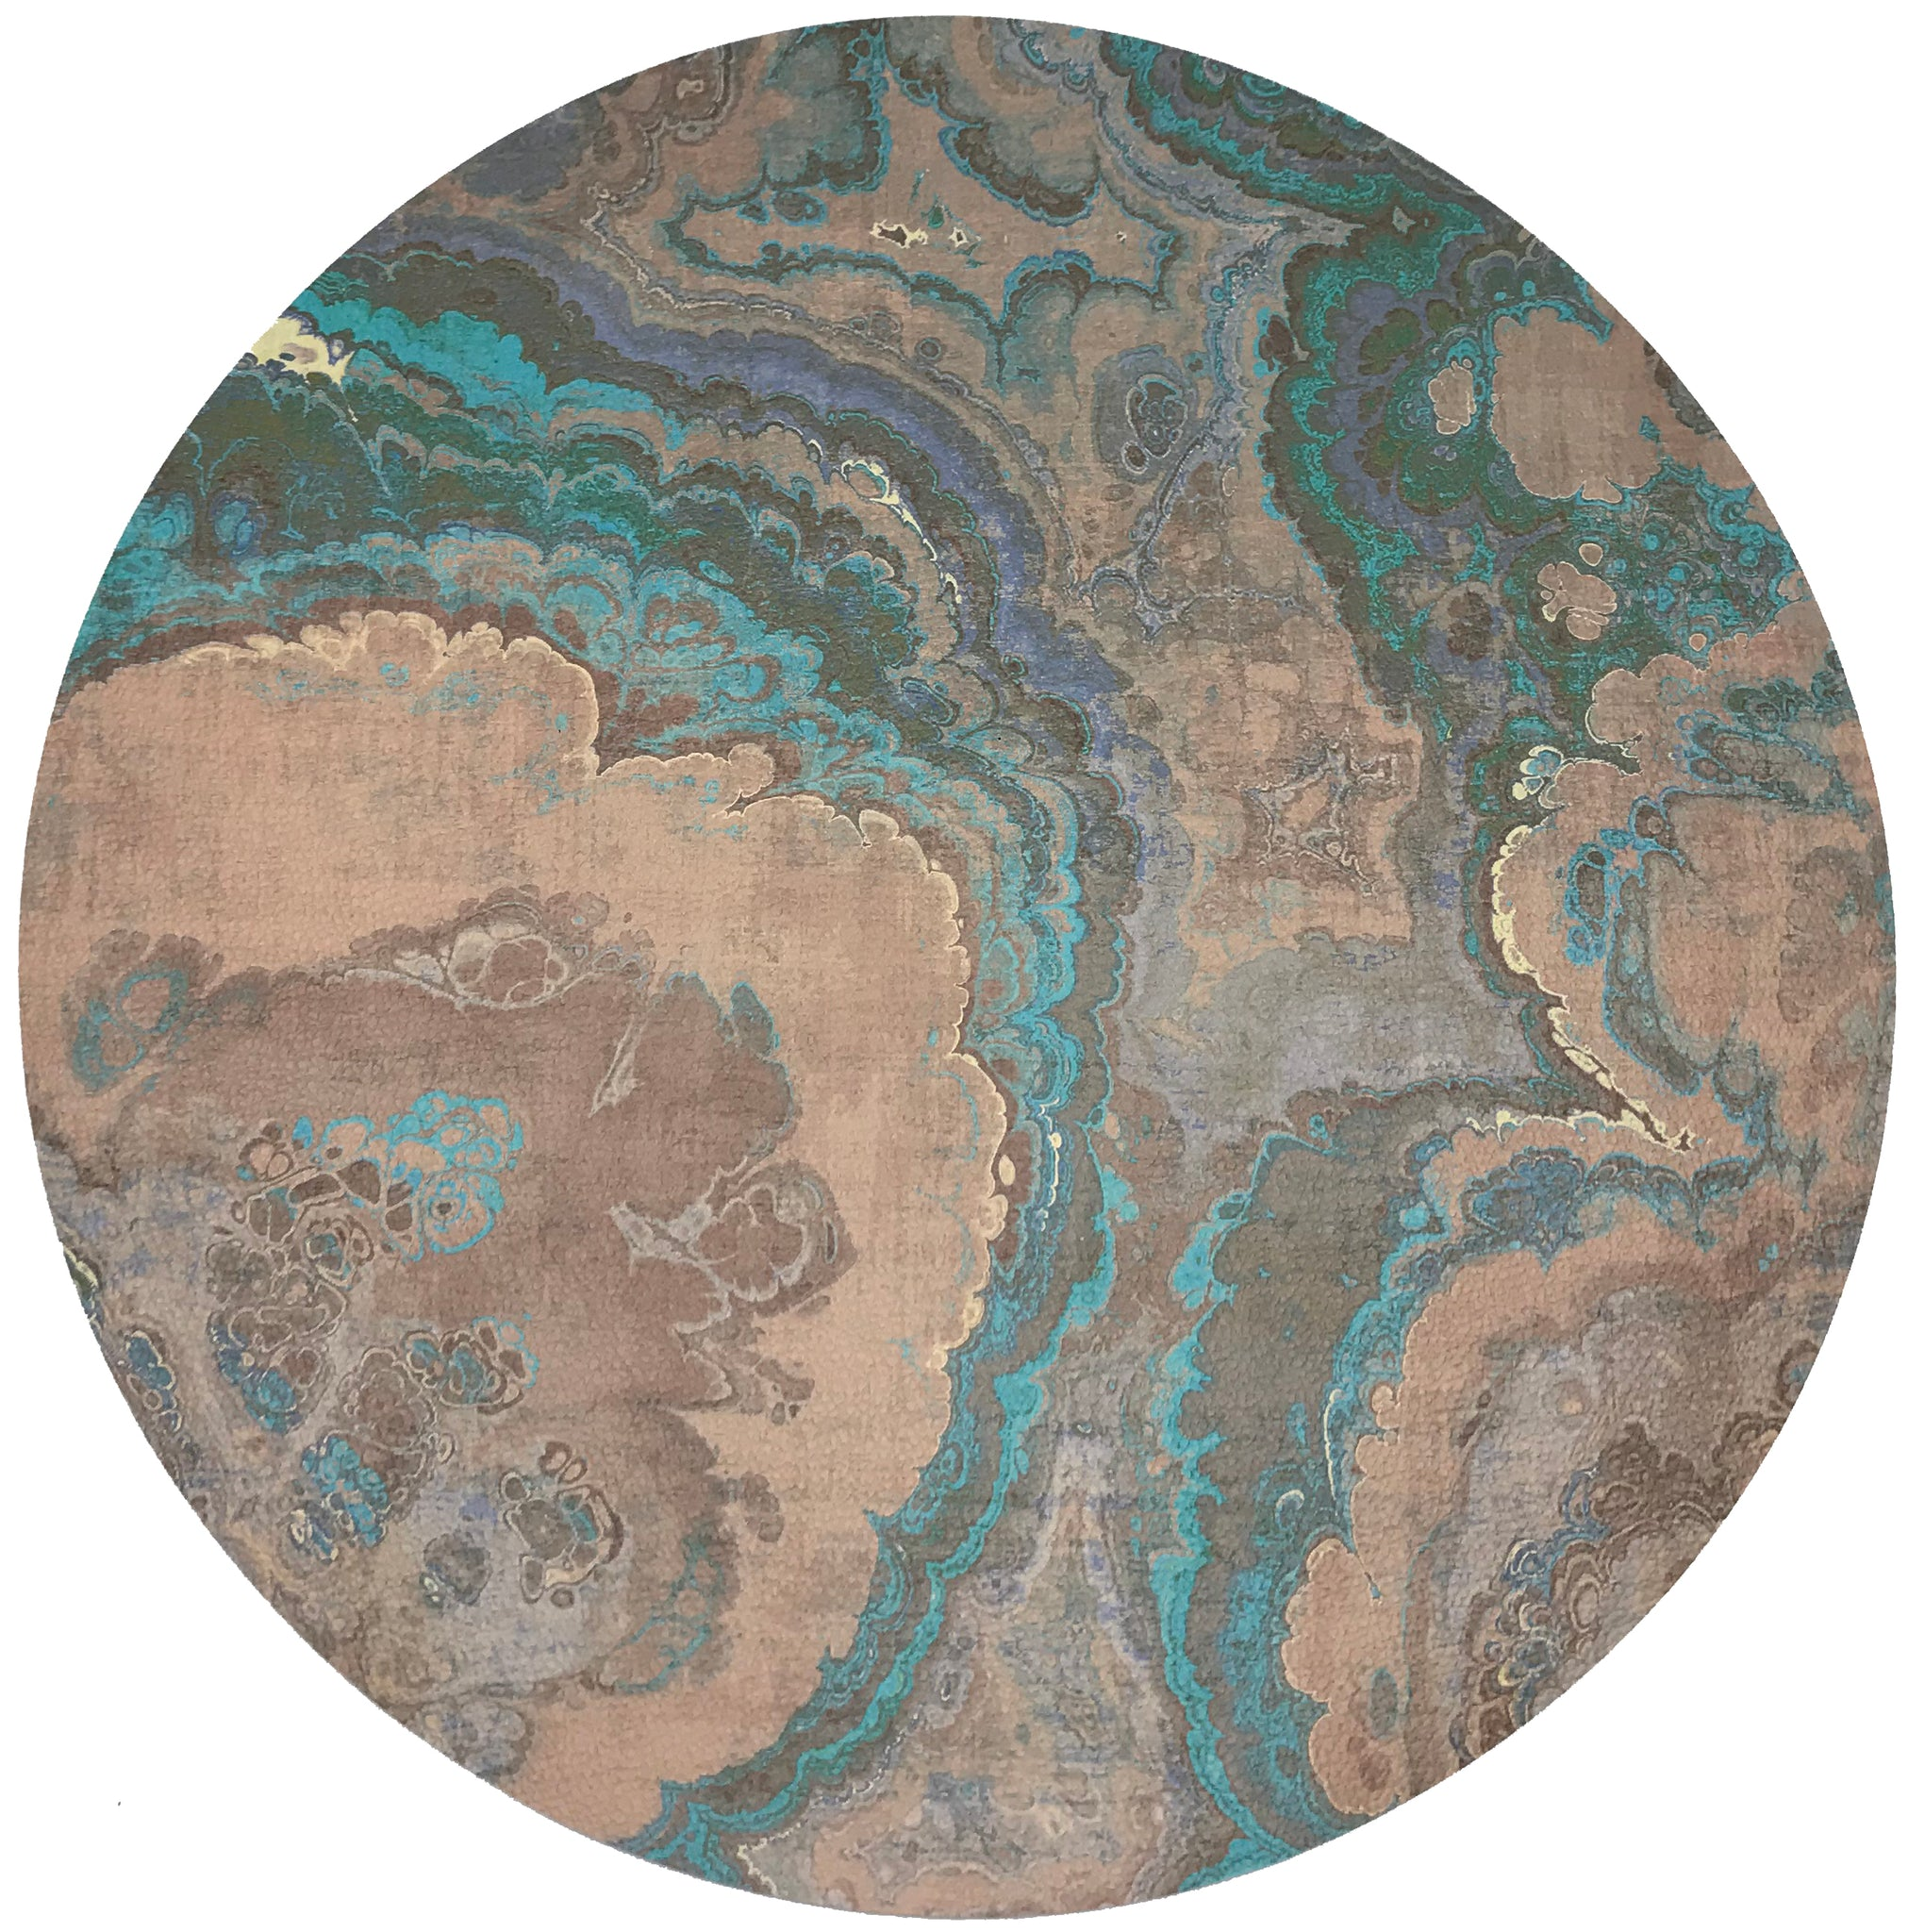 "AGATE CLAY 16"" ROUND PEBBLE PLACEMATS, SET OF 4 - nicolettemayer.shop"